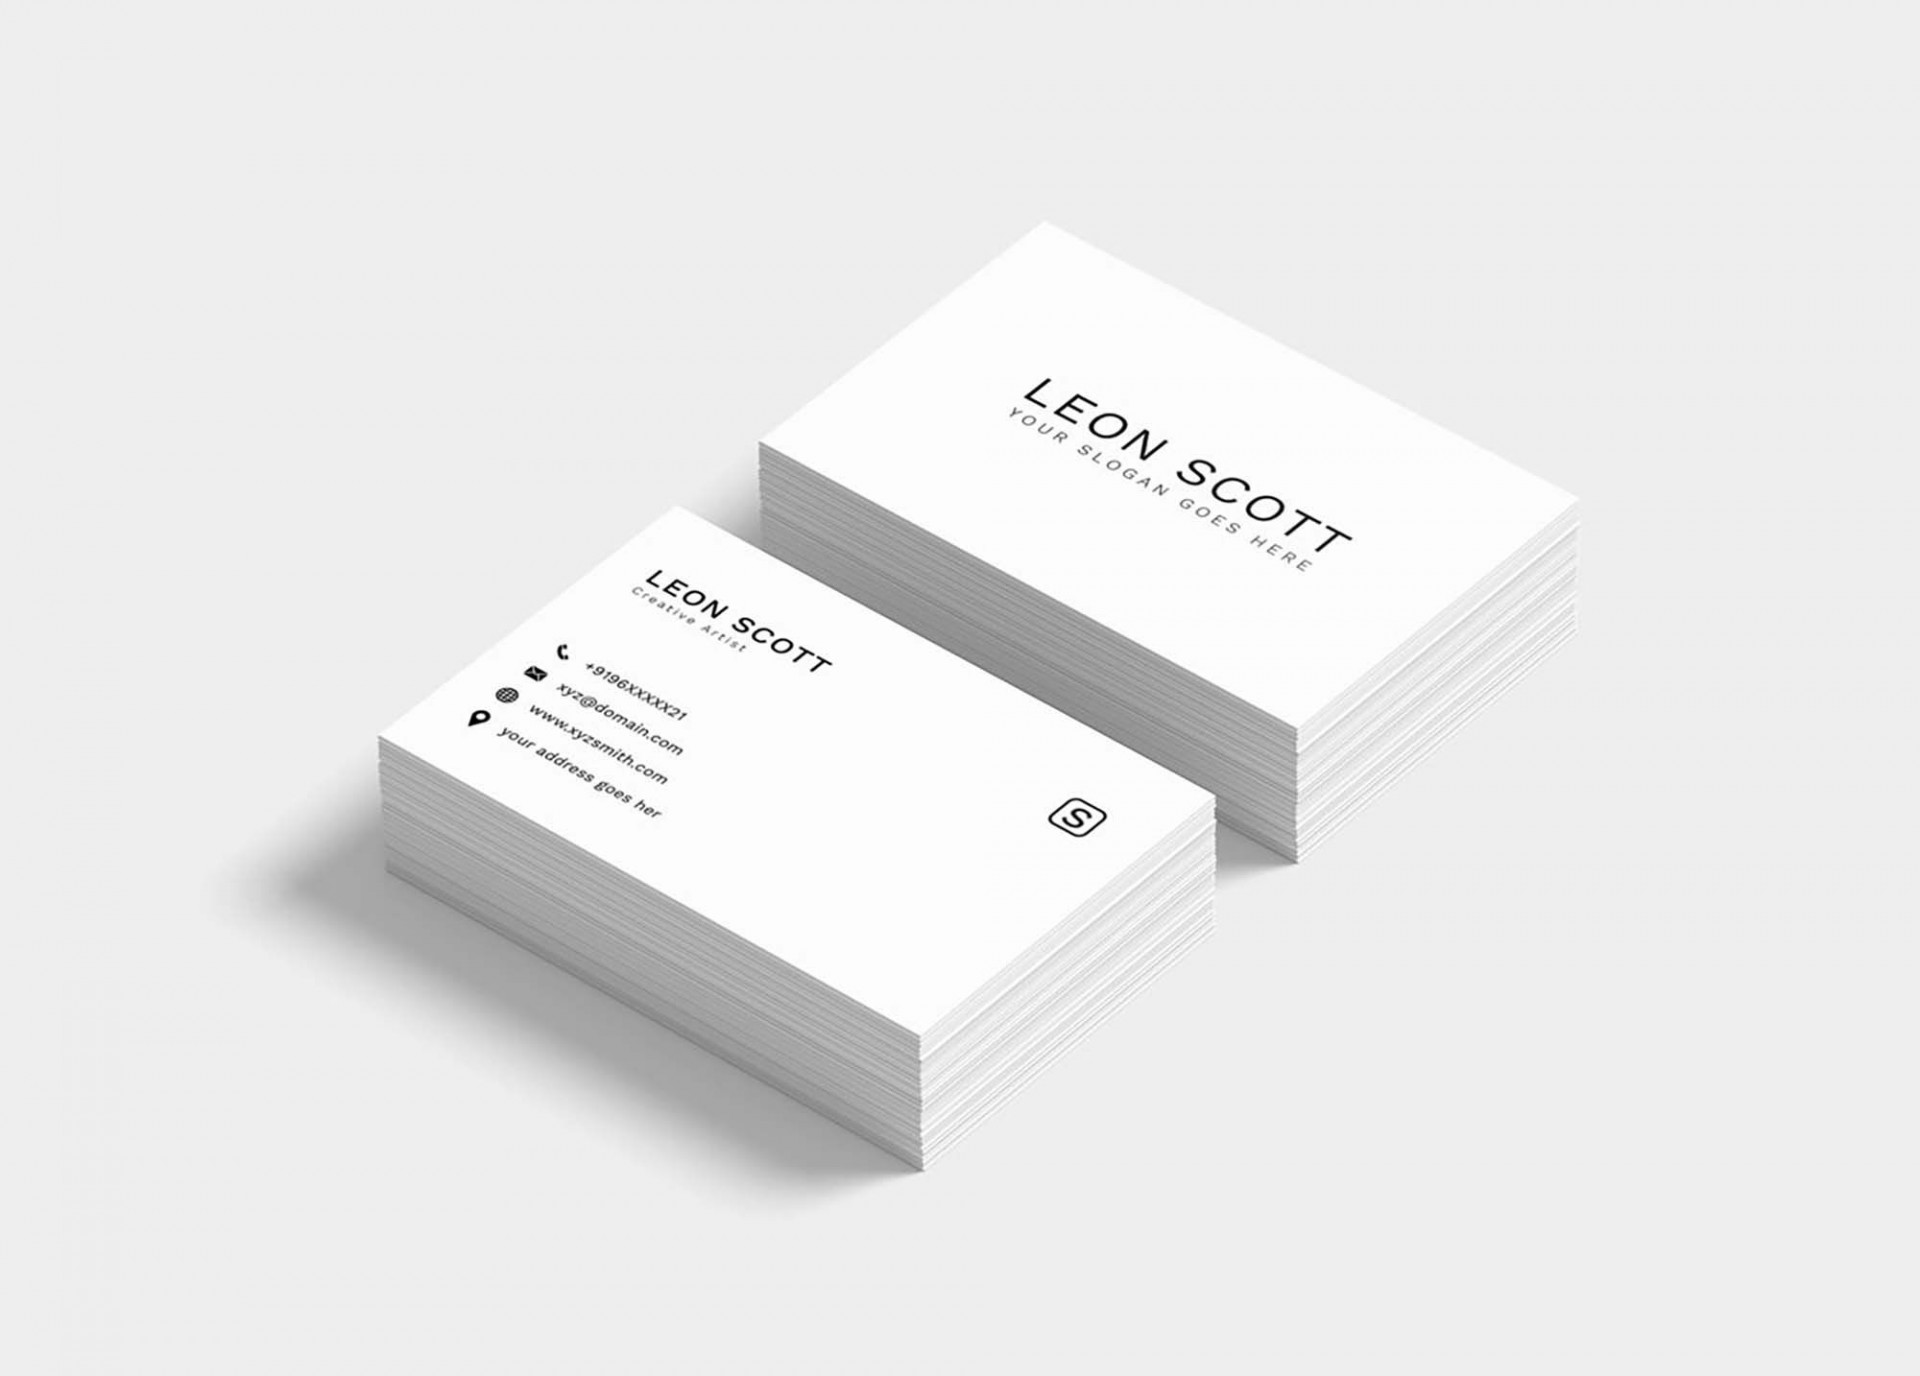 006 Shocking Minimal Busines Card Template Free Highest Quality  Easy Simple Download1920